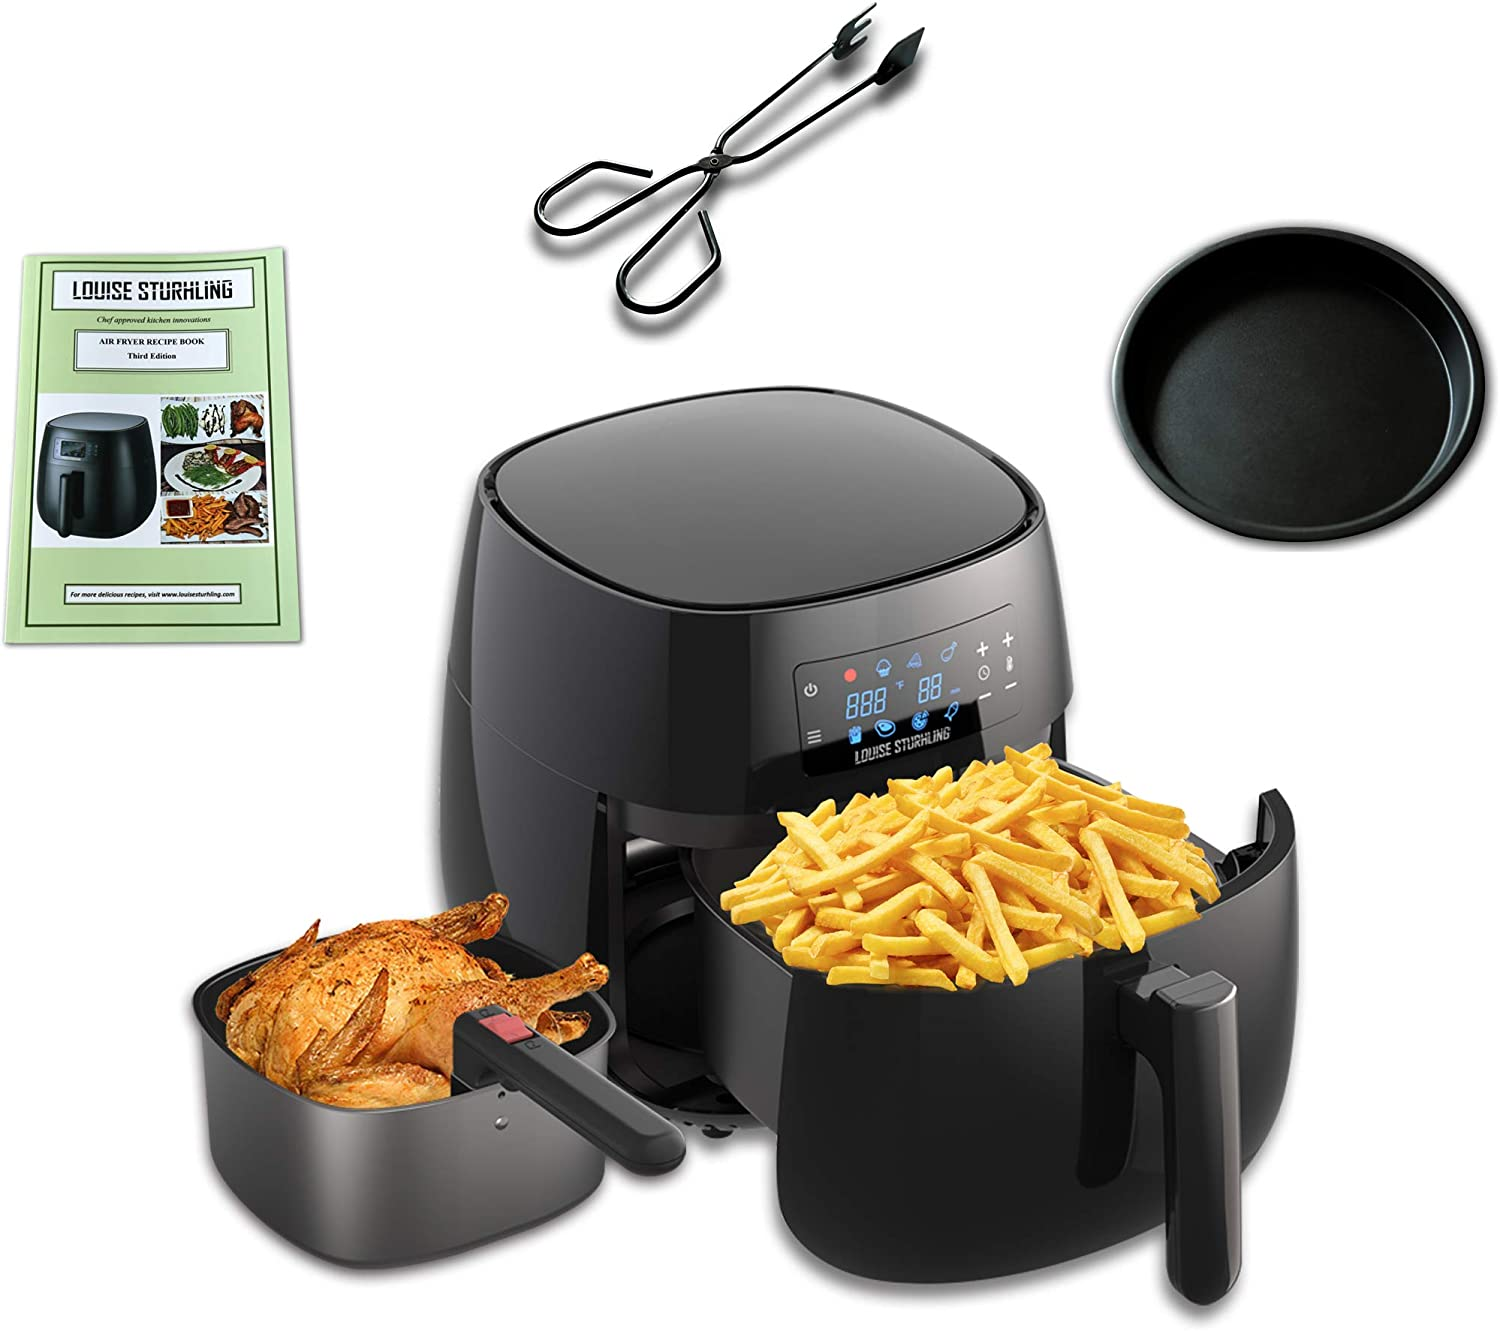 Top 10 Best Value Air Fryers In 2021 Review (with 25% off) 1